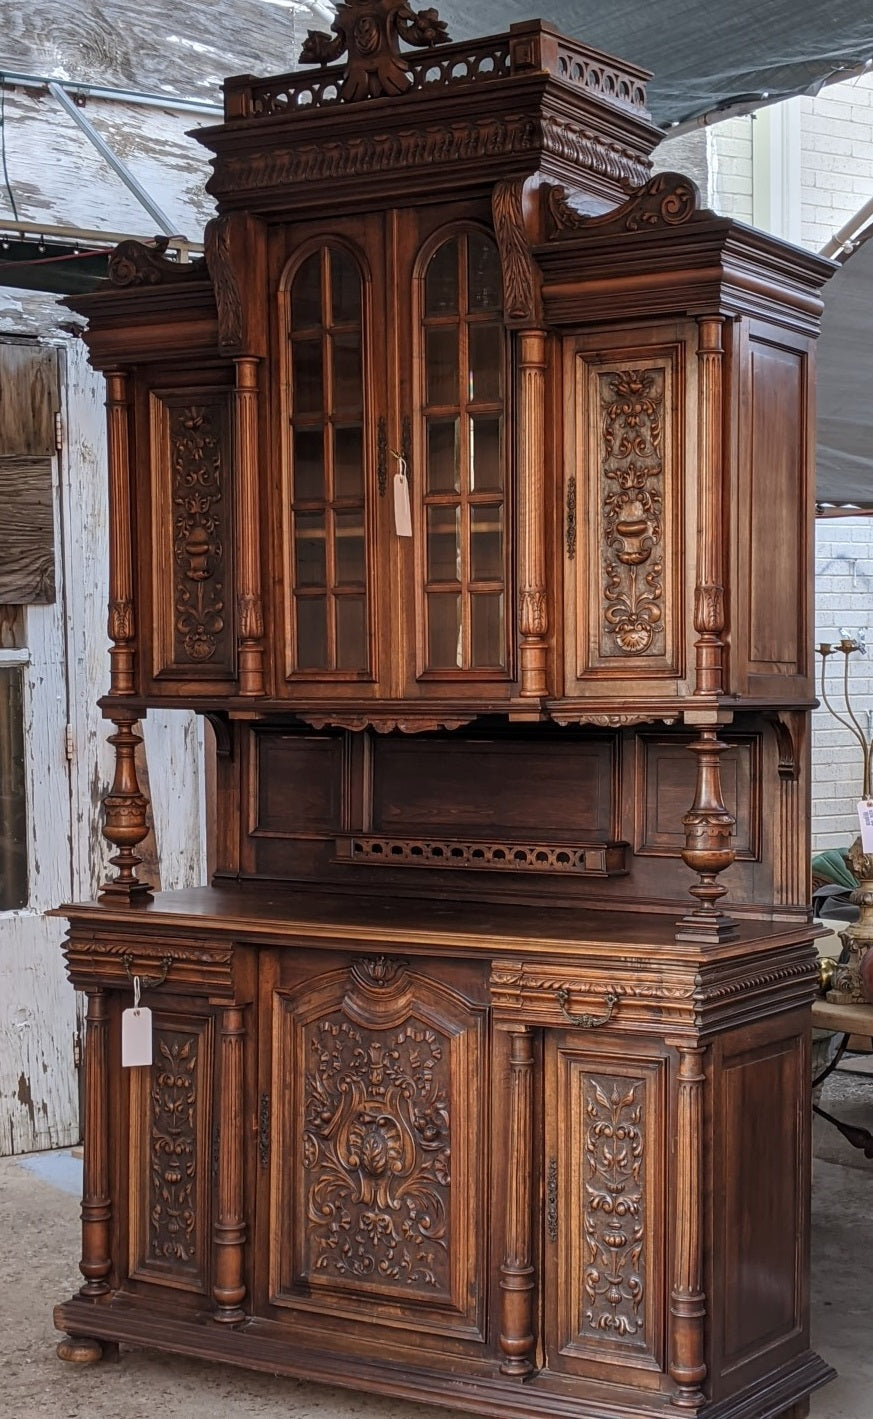 TALL HENRY II CARVED HUNTBOARD WITH BEVELED GLASS DOOR